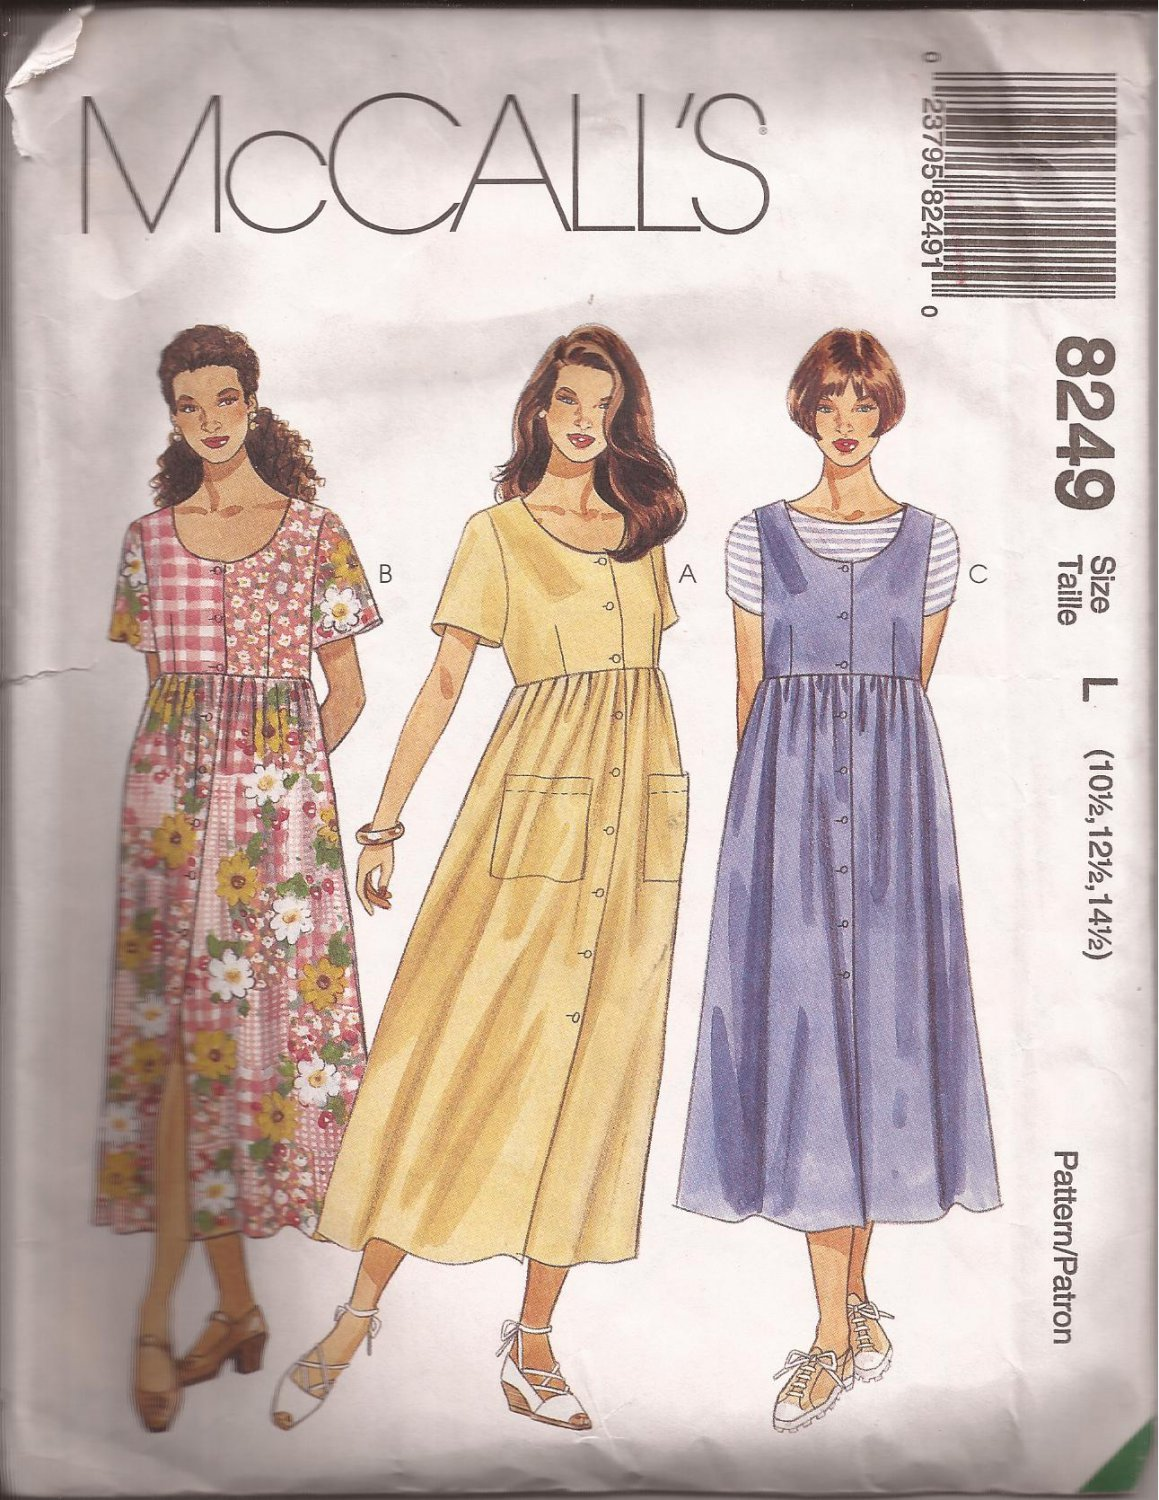 McCalls 8249 (1996) Half Size Dress Jumper Empire Waist Scoop Neck Pattern Size 10.5 12.5 14.5 CUT